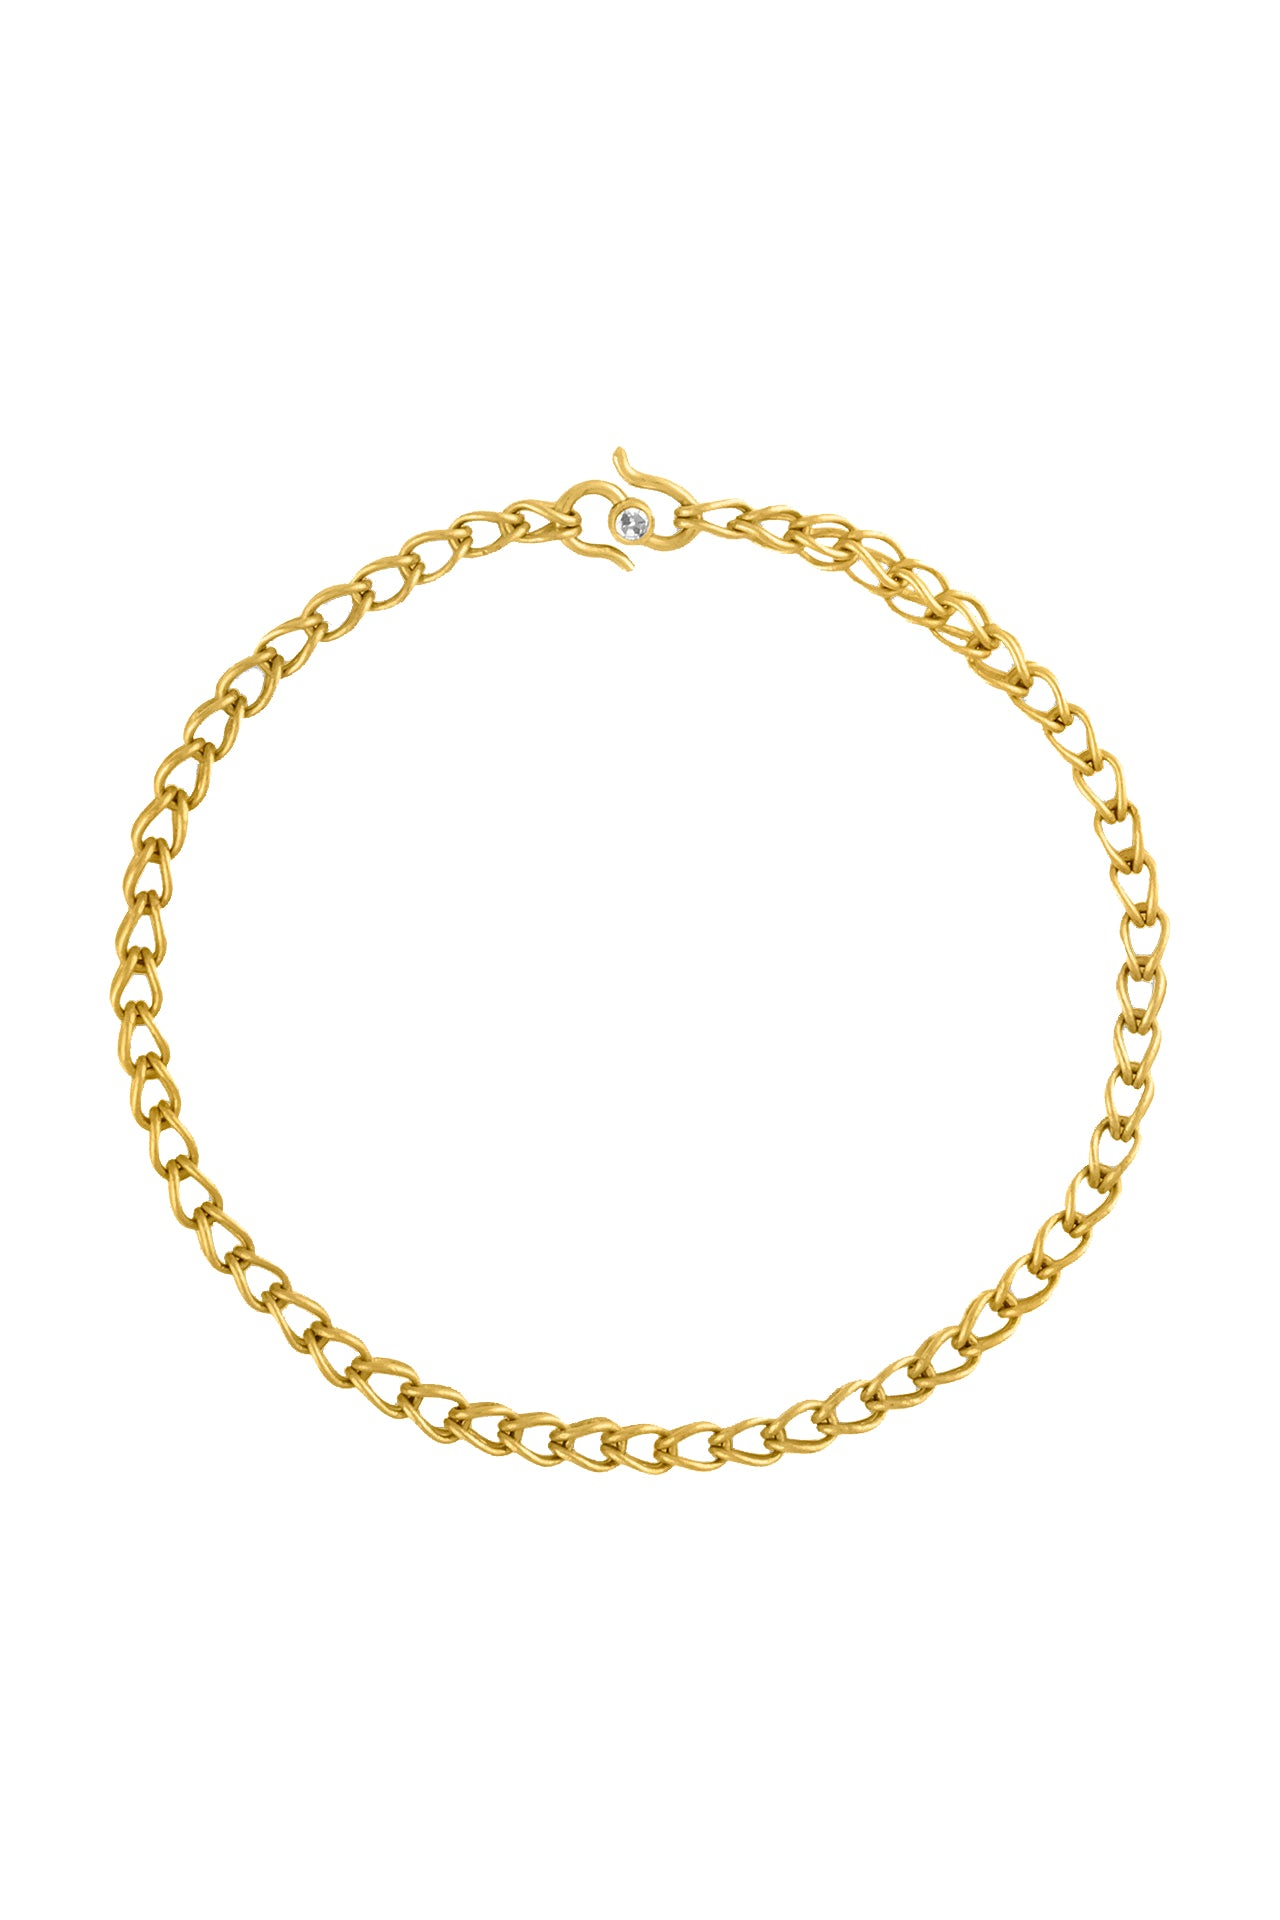 Solo Loop-in-Loop Chain Bracelet